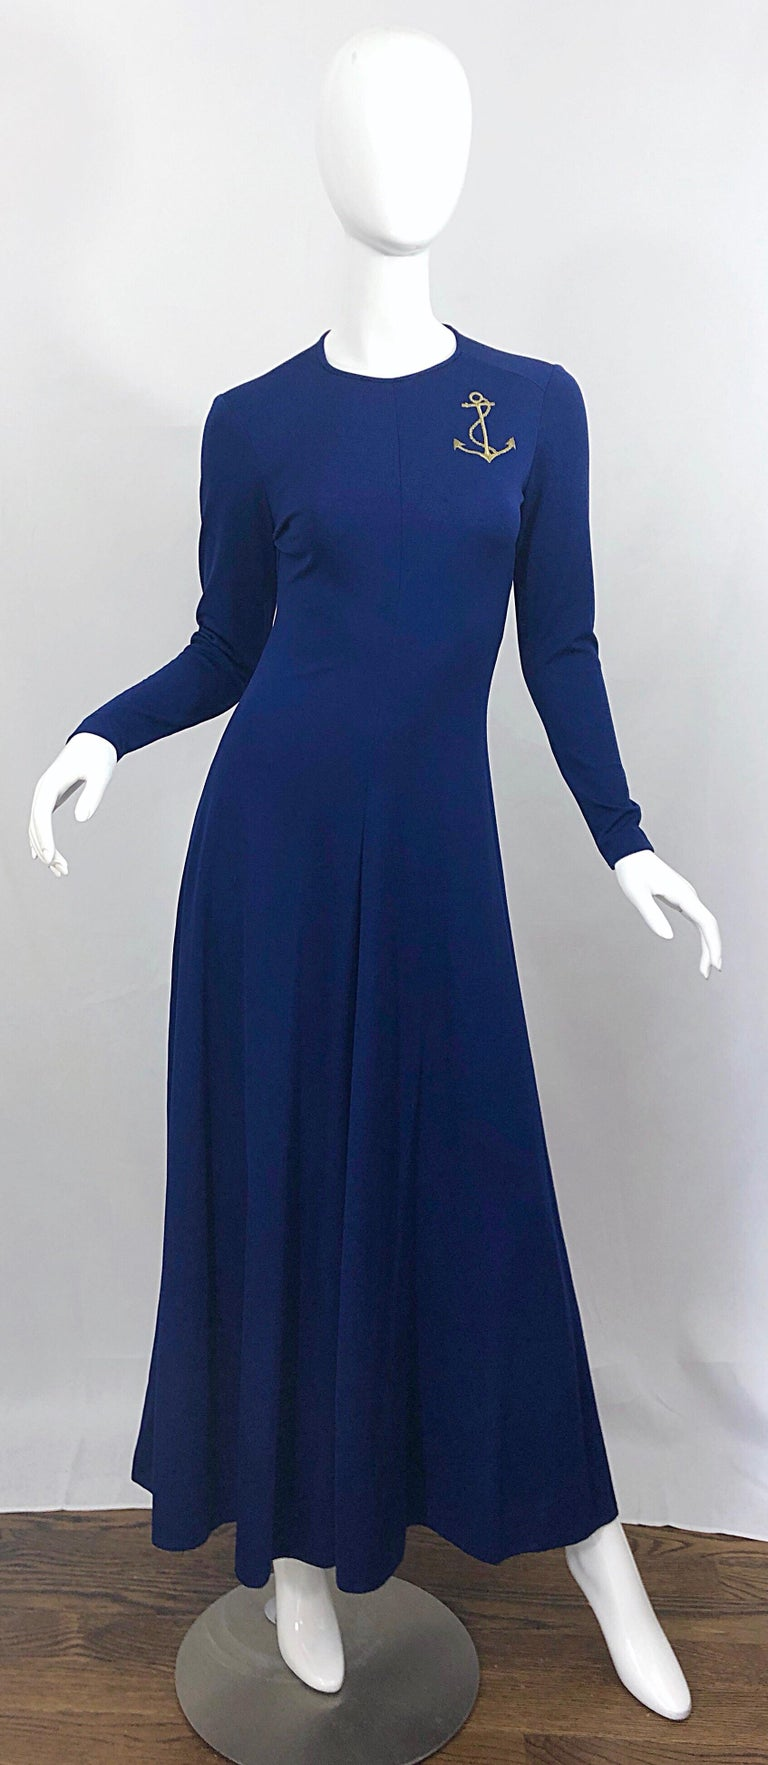 Amazing 1970s Nautical Navy Blue + Gold Anchor Patch Vintage Jersey maxi Dress For Sale 5